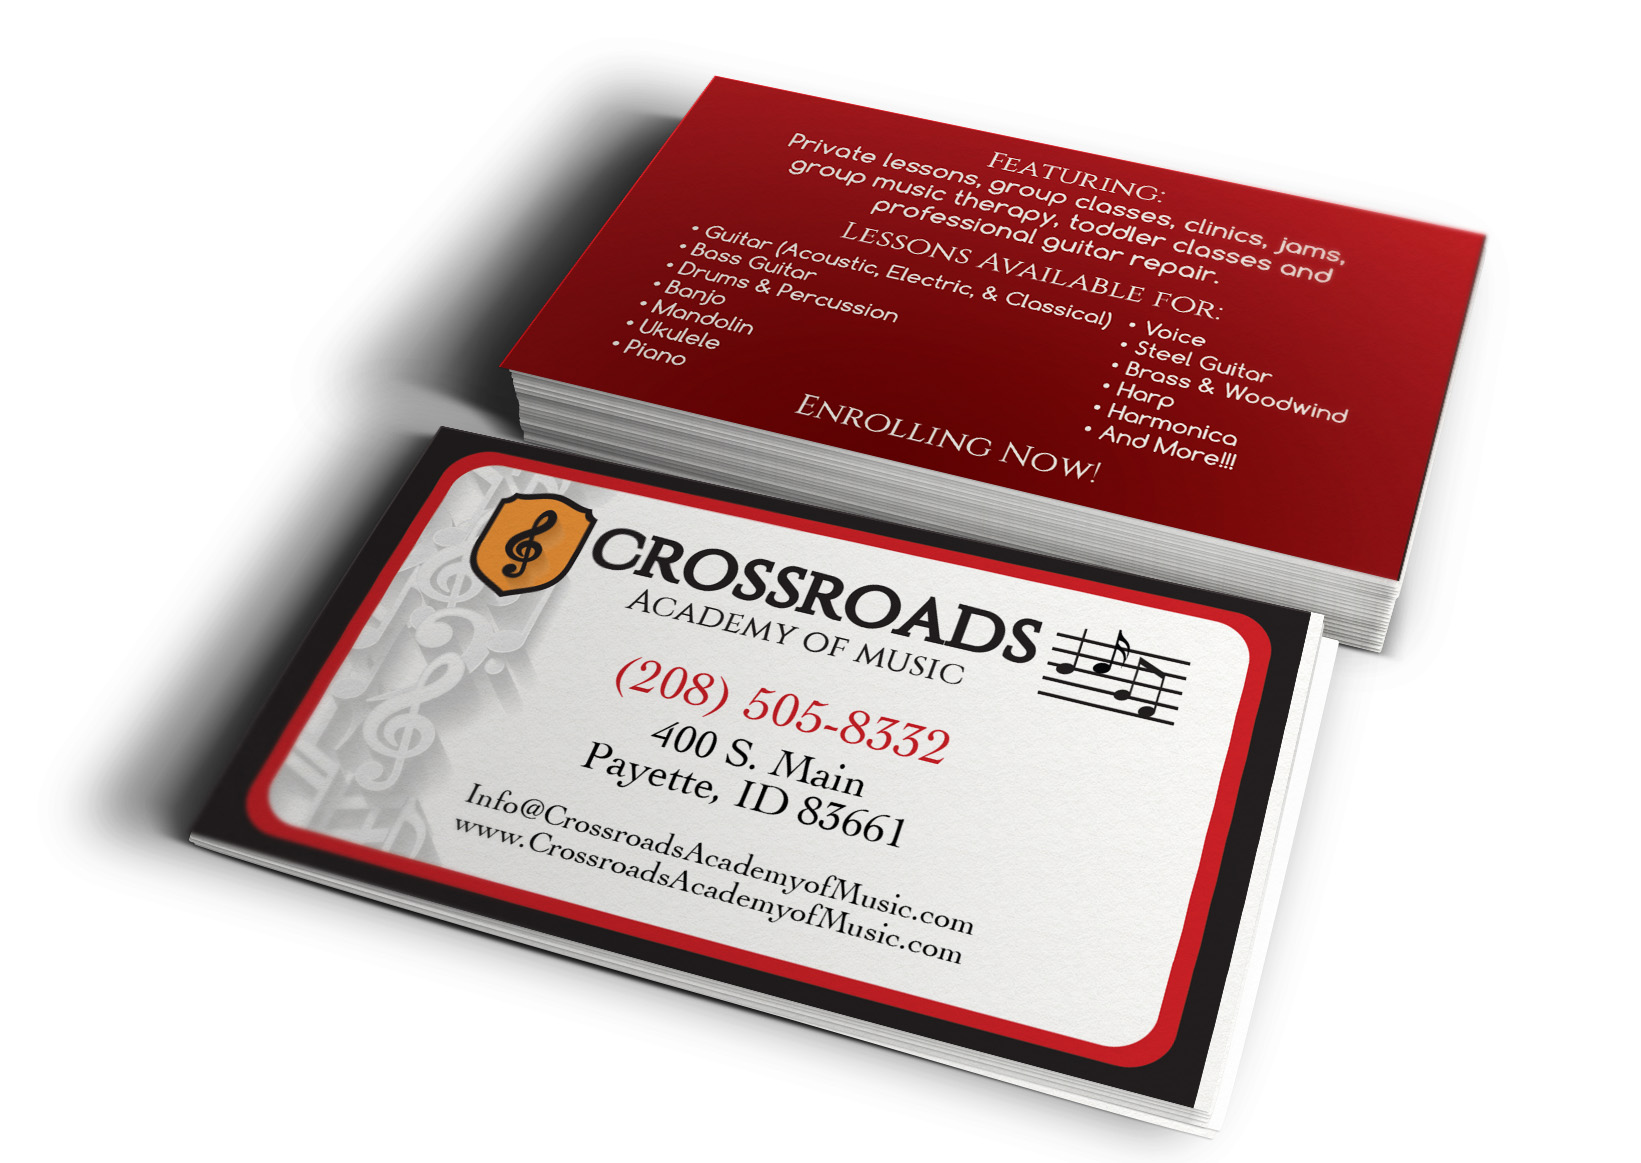 Crossroads Academy of Music